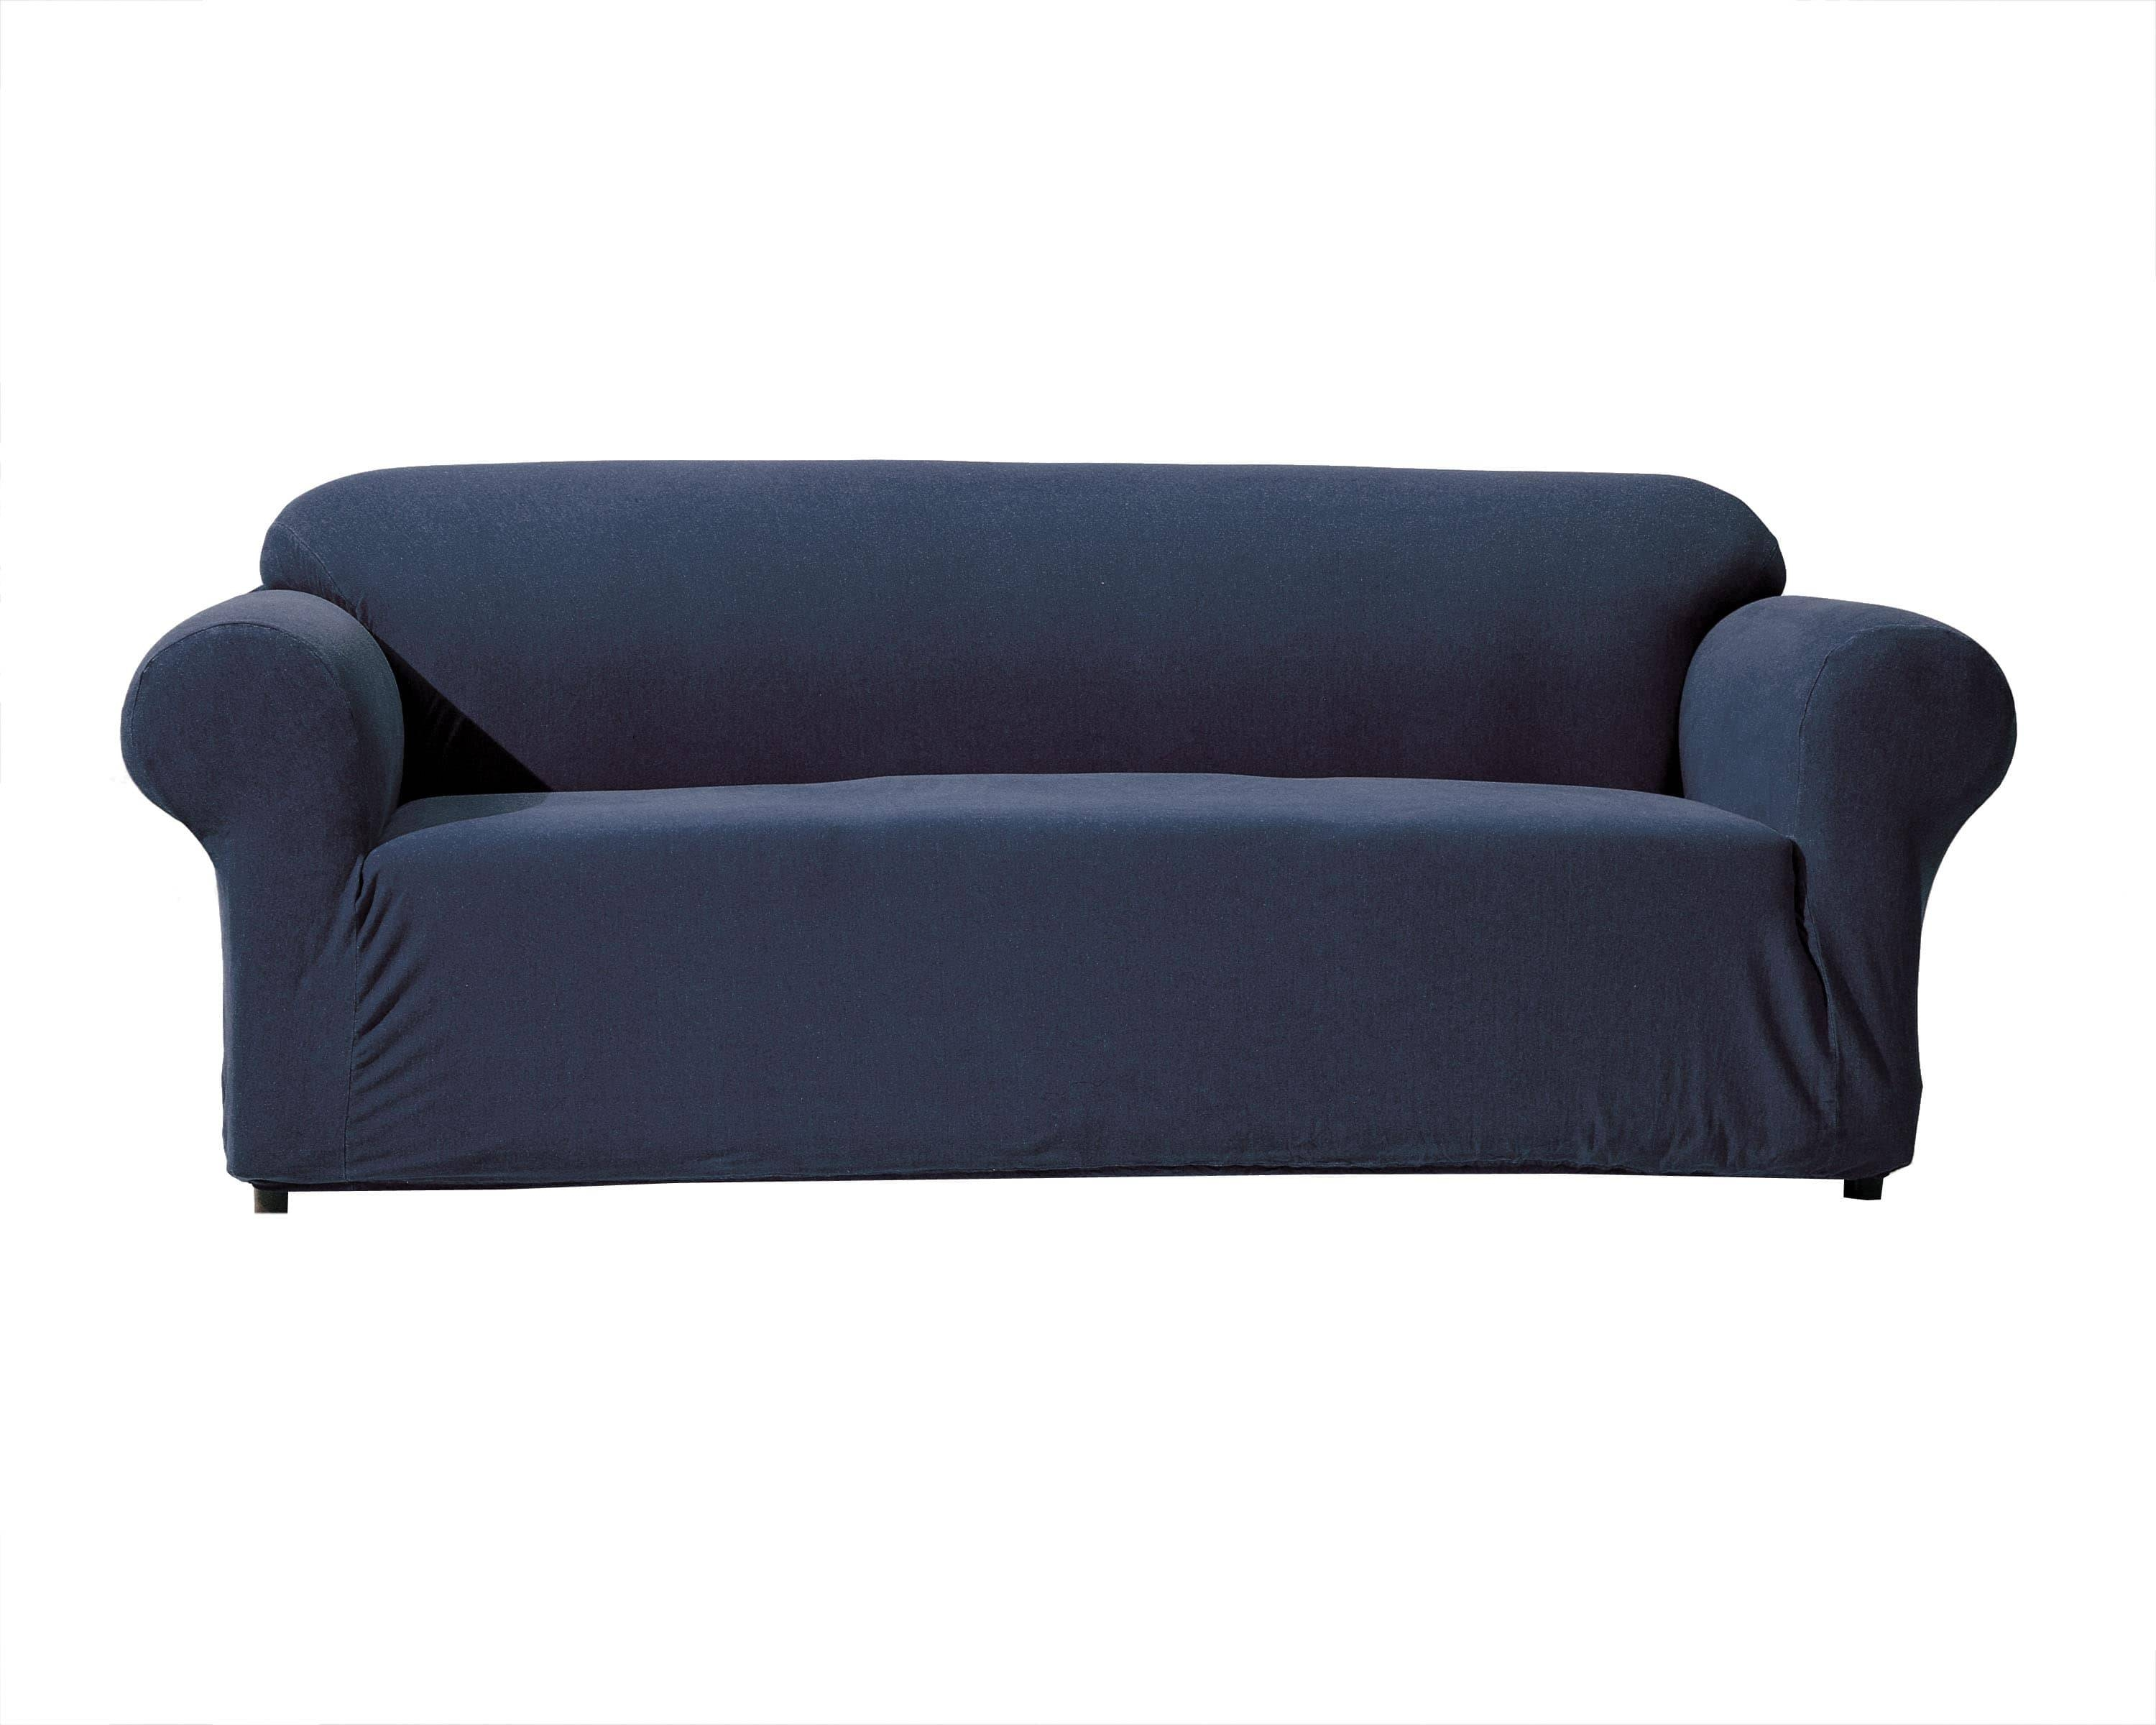 Denim Stretch Sofa Slipcover - Free Shipping Today - Overstock with Blue Denim Sofas (Image 9 of 15)